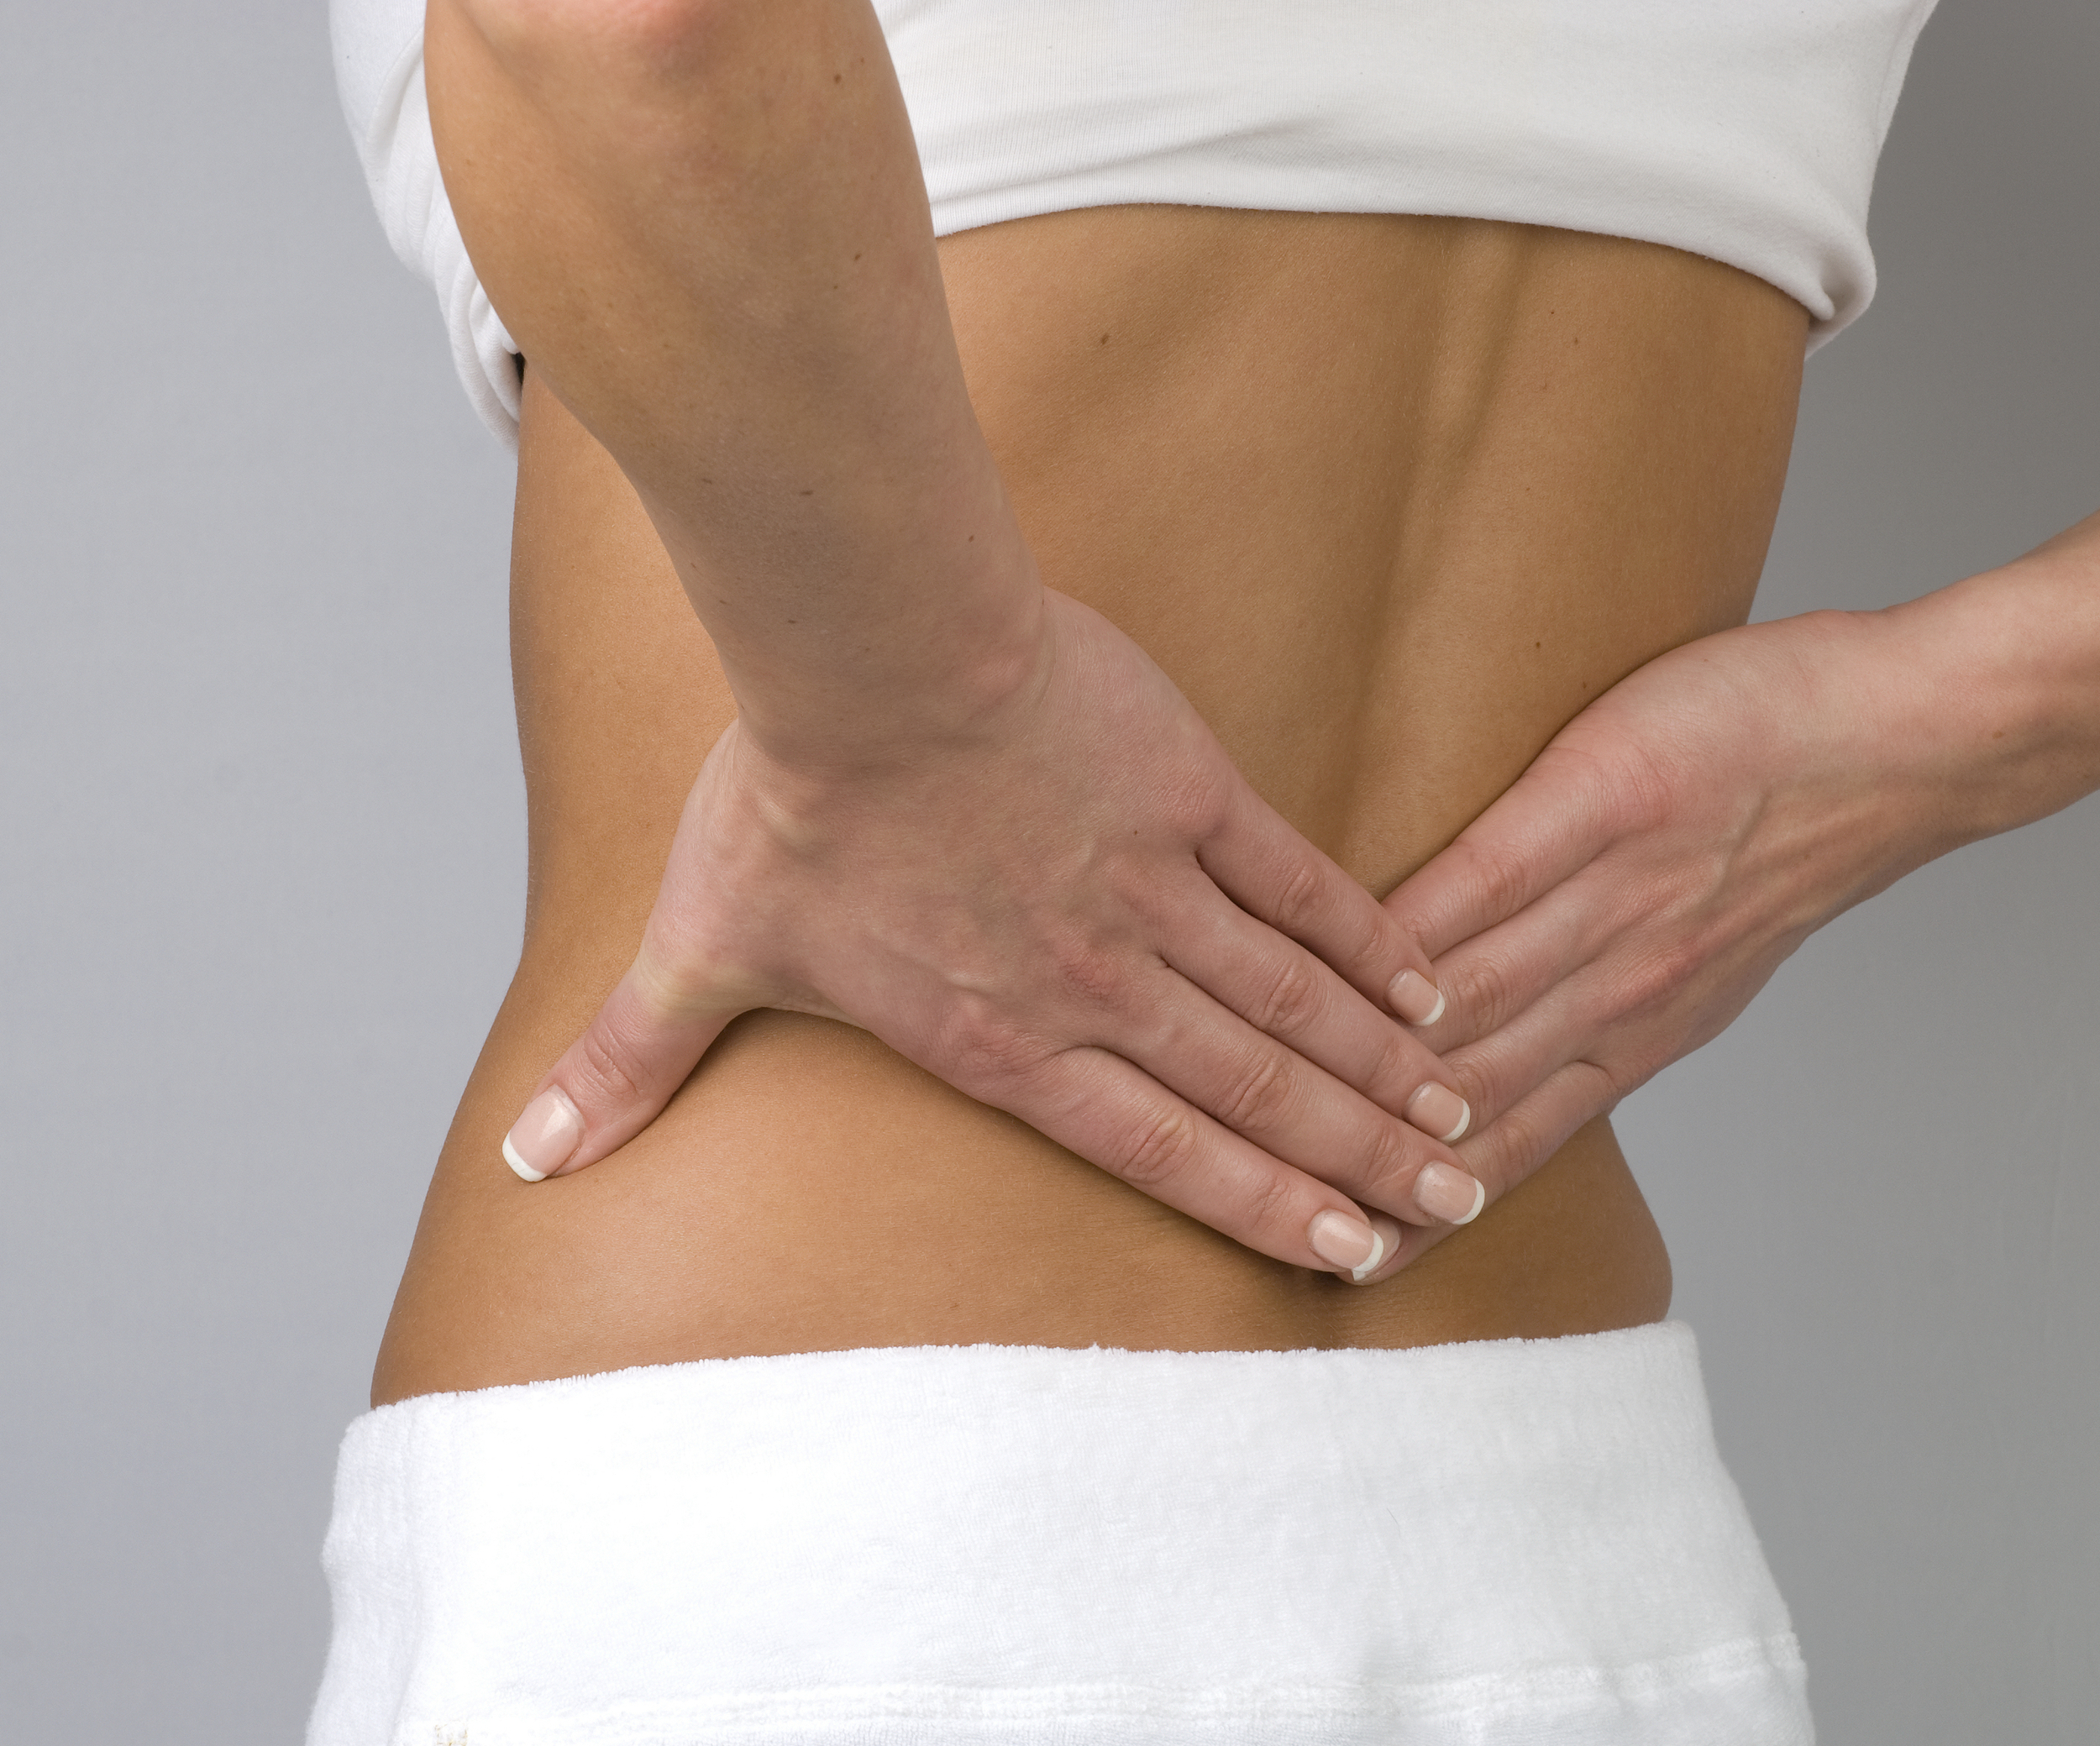 When the Sciatic Nerve is irritated, pain can radiate down the legs